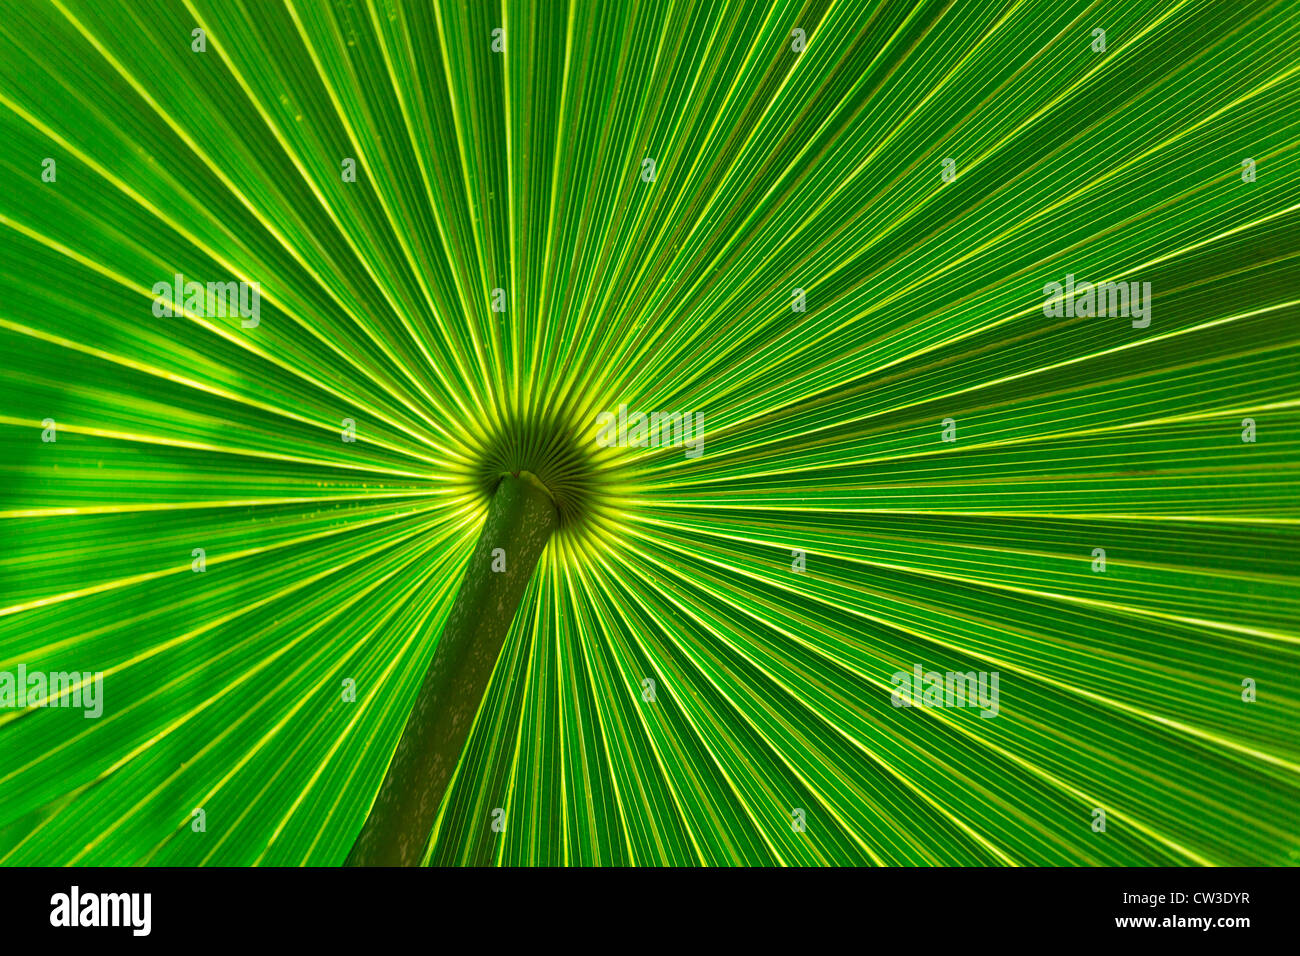 Close-up di Saw palmetto leaf Immagini Stock